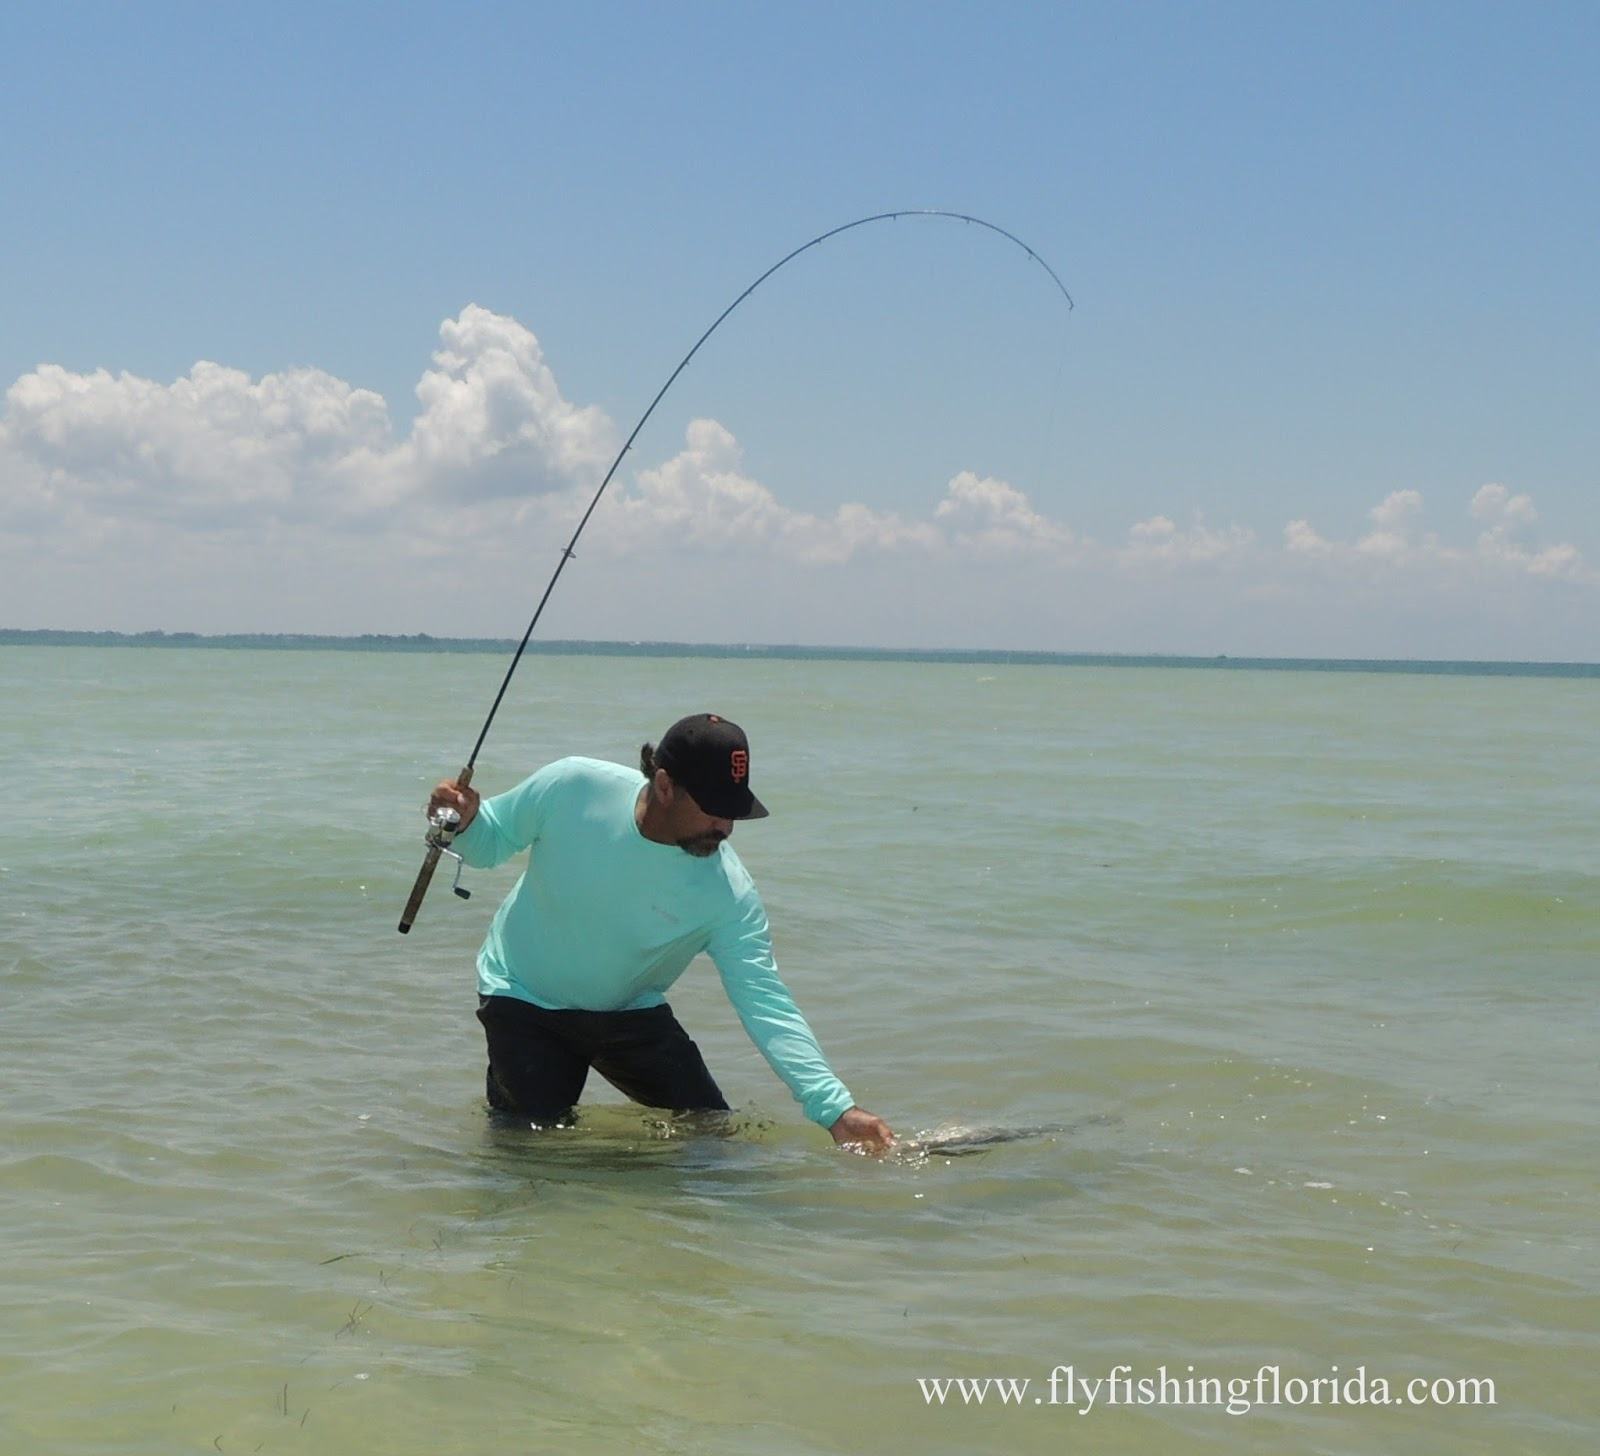 Reel florida adventures for Fishing clearwater fl